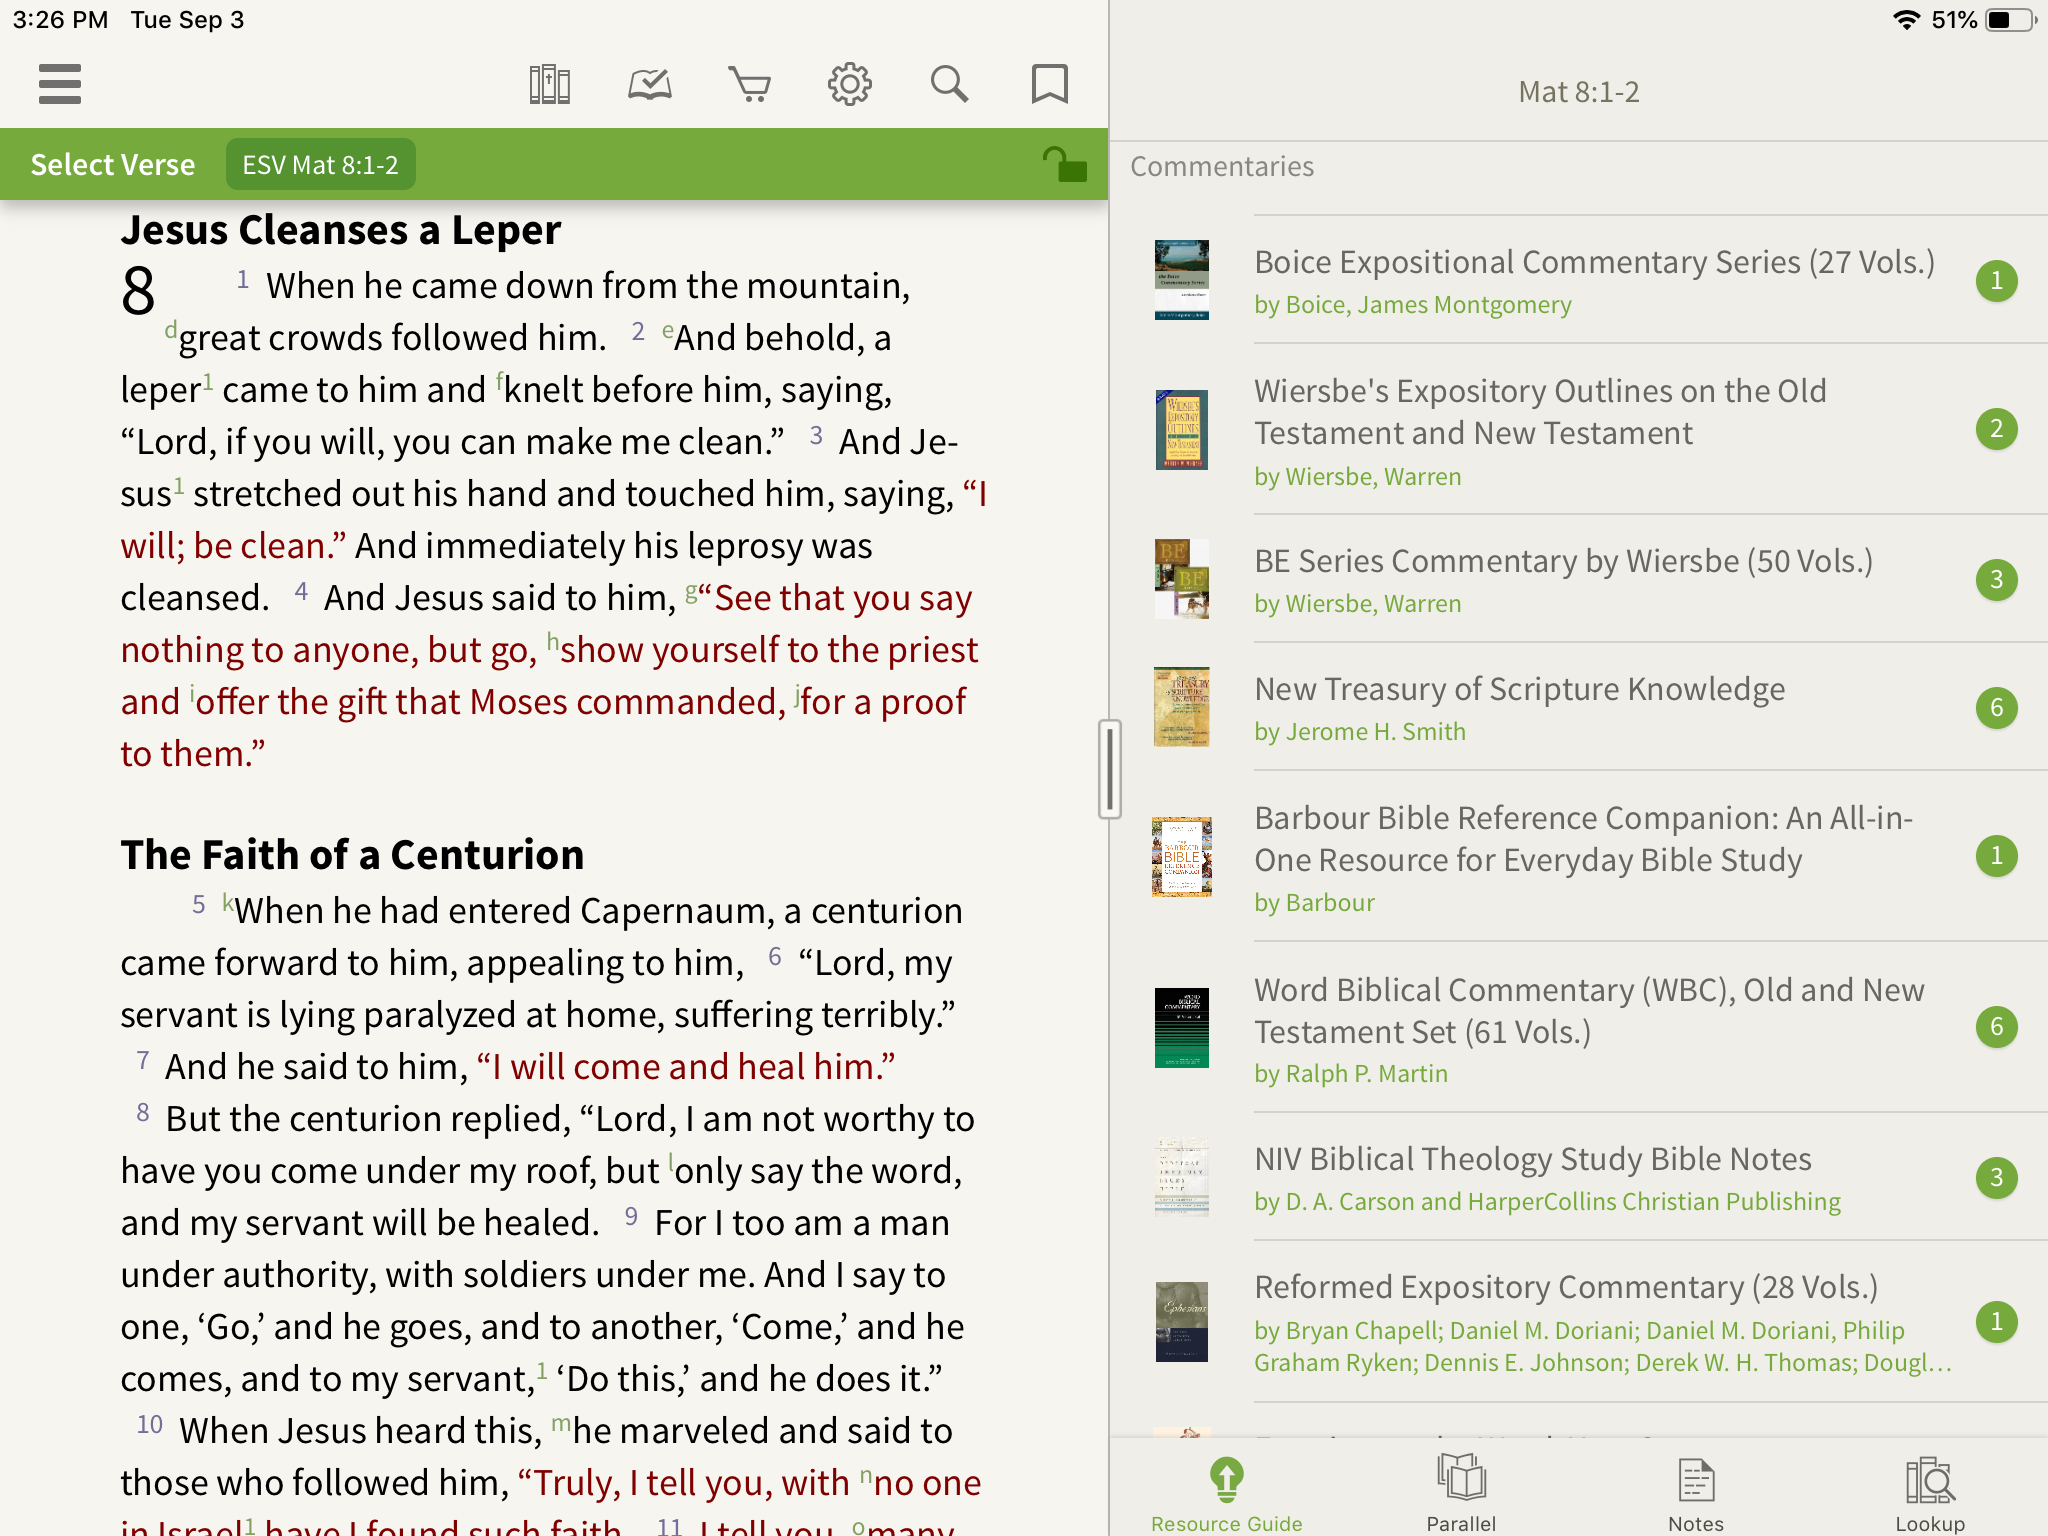 Reformed Expository Commentary in the Olive Tree Bible App